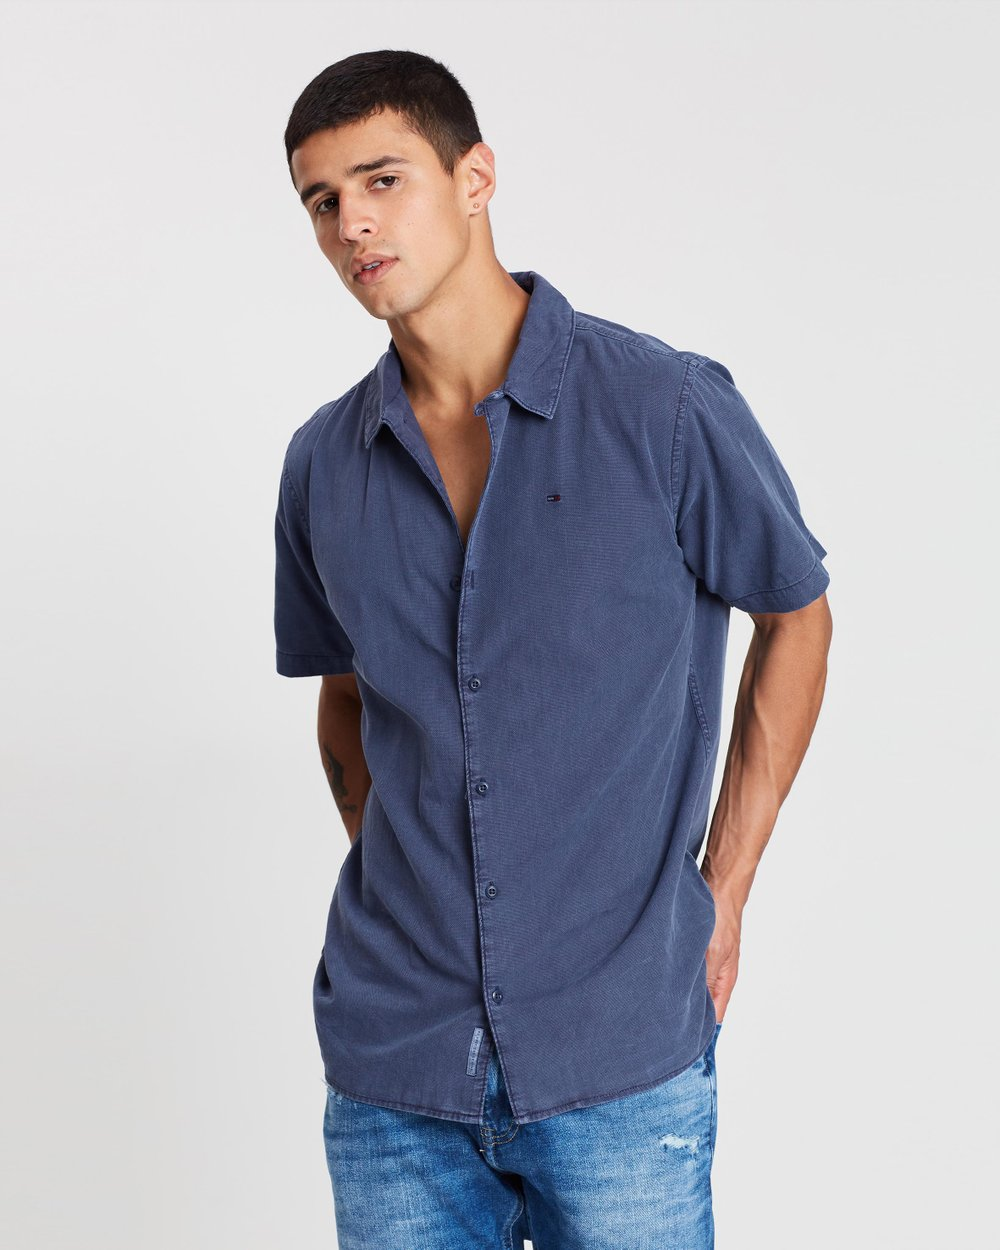 fbbd458a64d8 Summer Pique Camp Shirt by Tommy Jeans Online